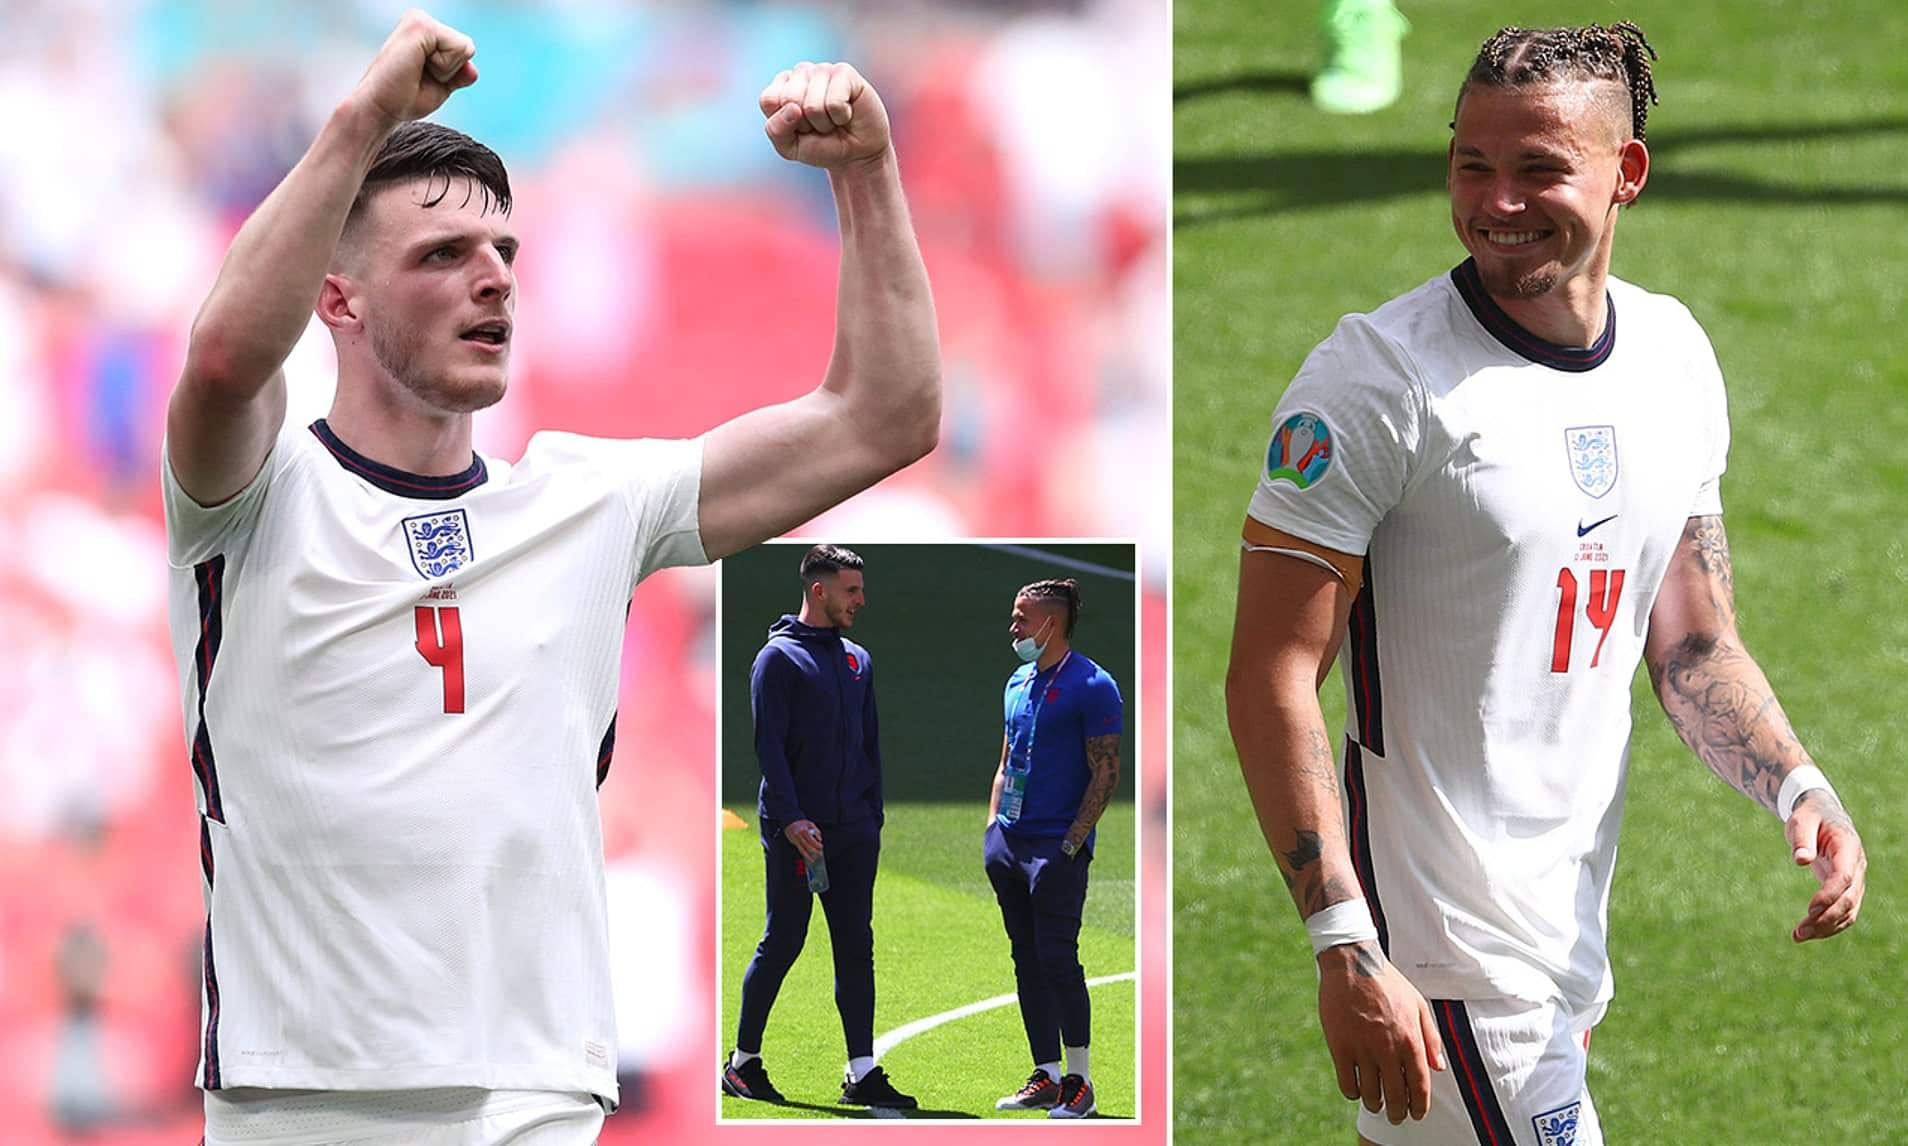 Euro 2020: Rice, Phillips Showed Class Against Germany -Sterling